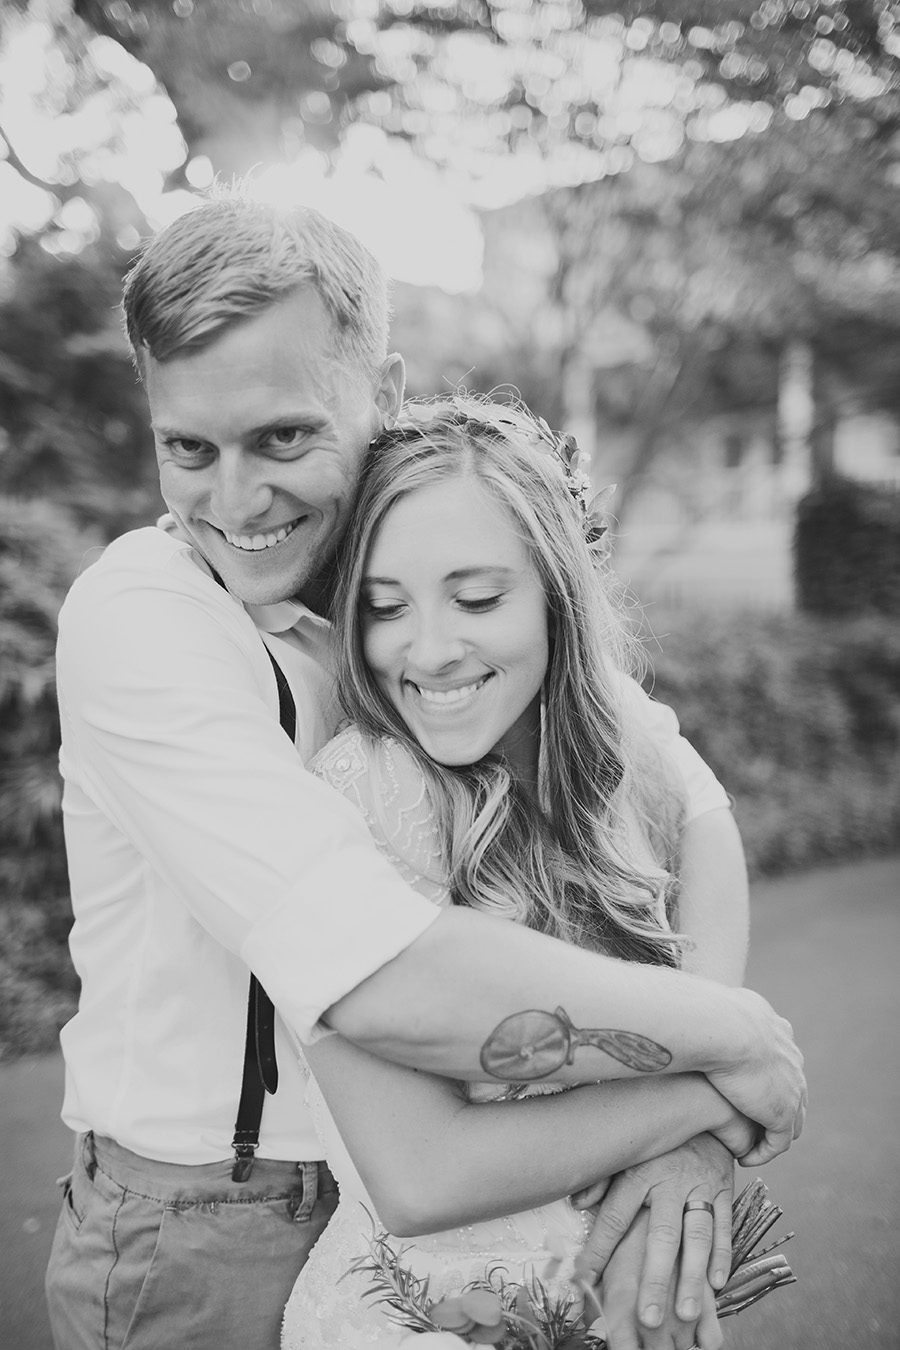 DavisWedding - Alicia White Photography-775.jpg